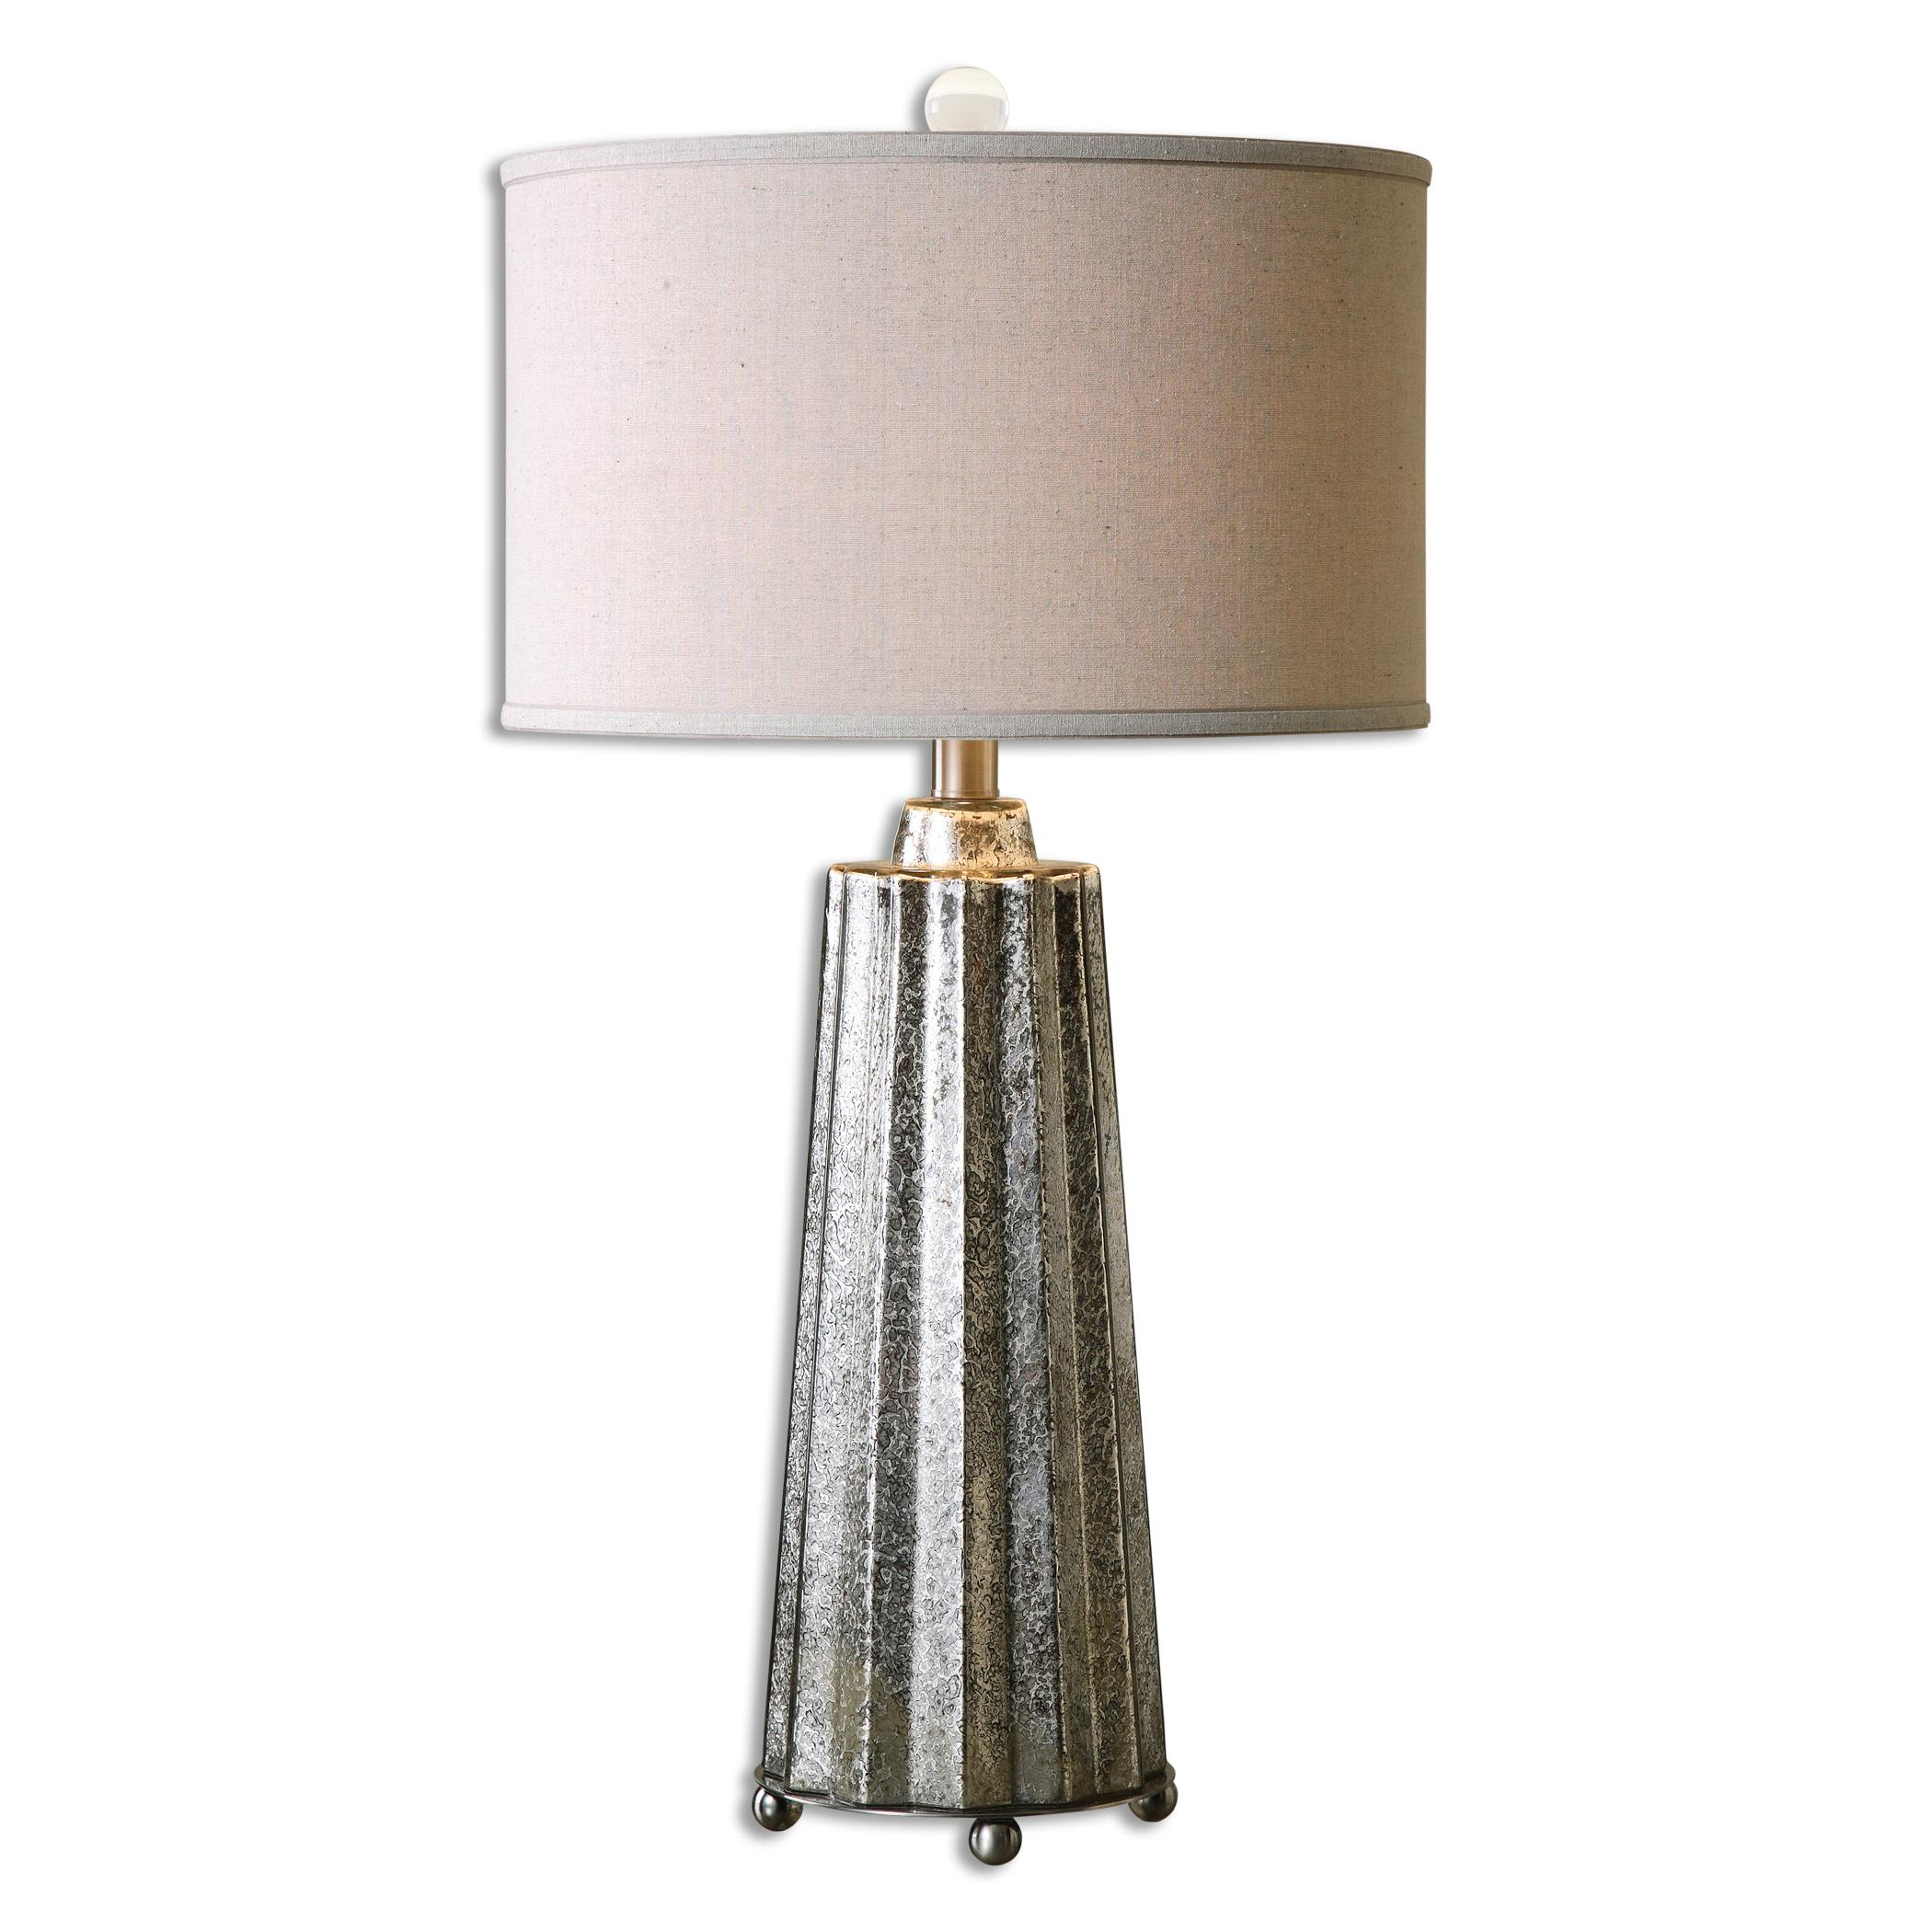 Table Lamps Sullivan Mercury Glass Table Lamp by Uttermost at Stuckey Furniture